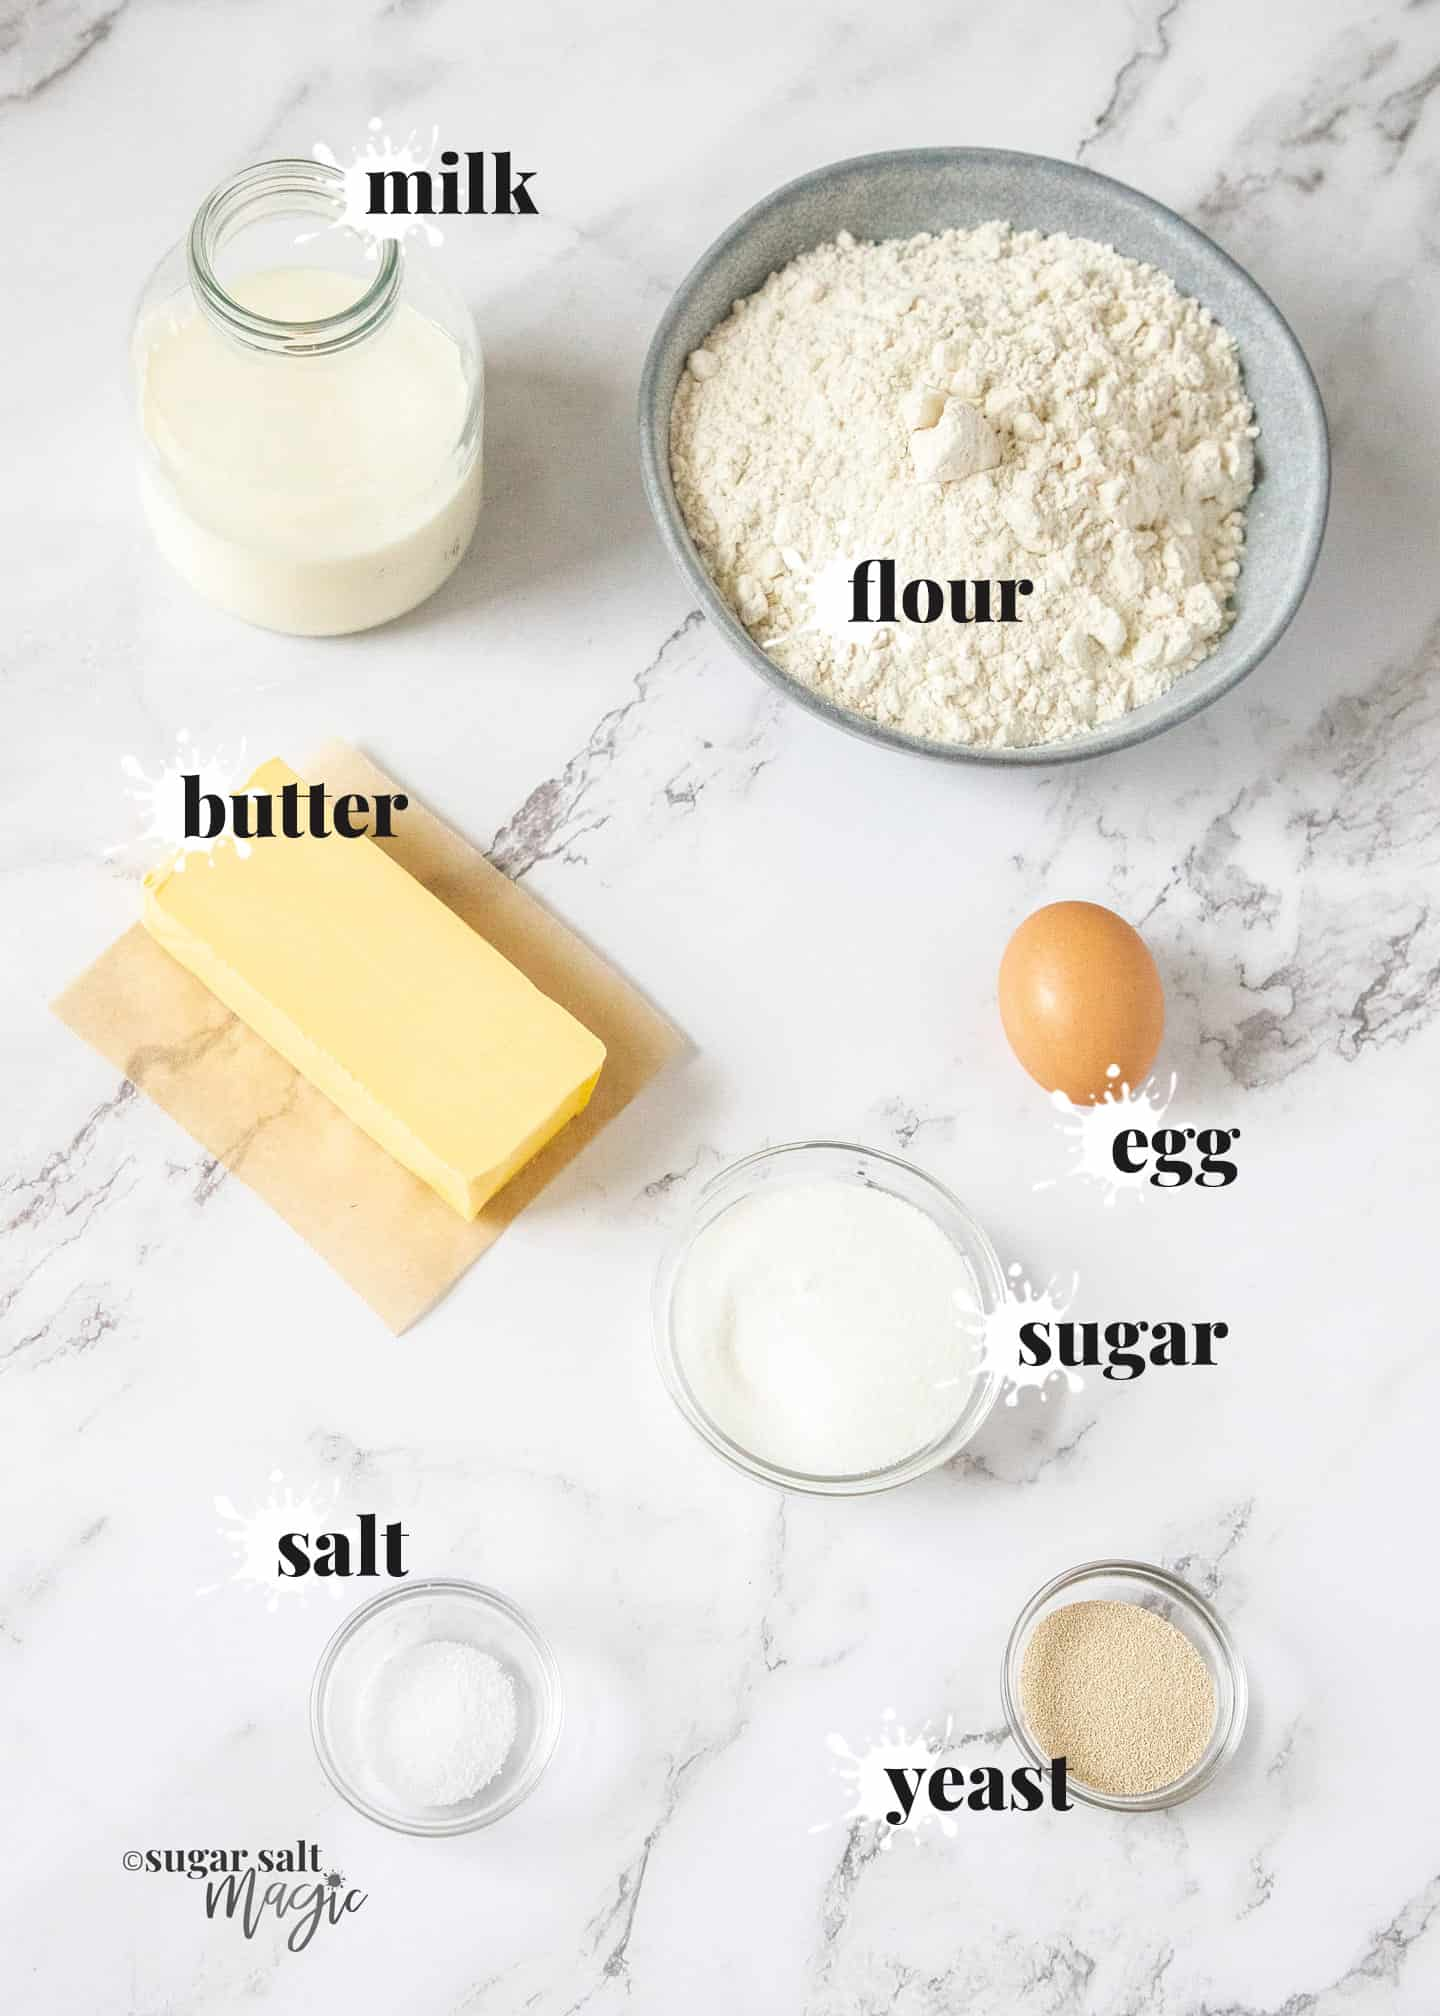 Ingredients for danish pastry dough on a marble countertop.